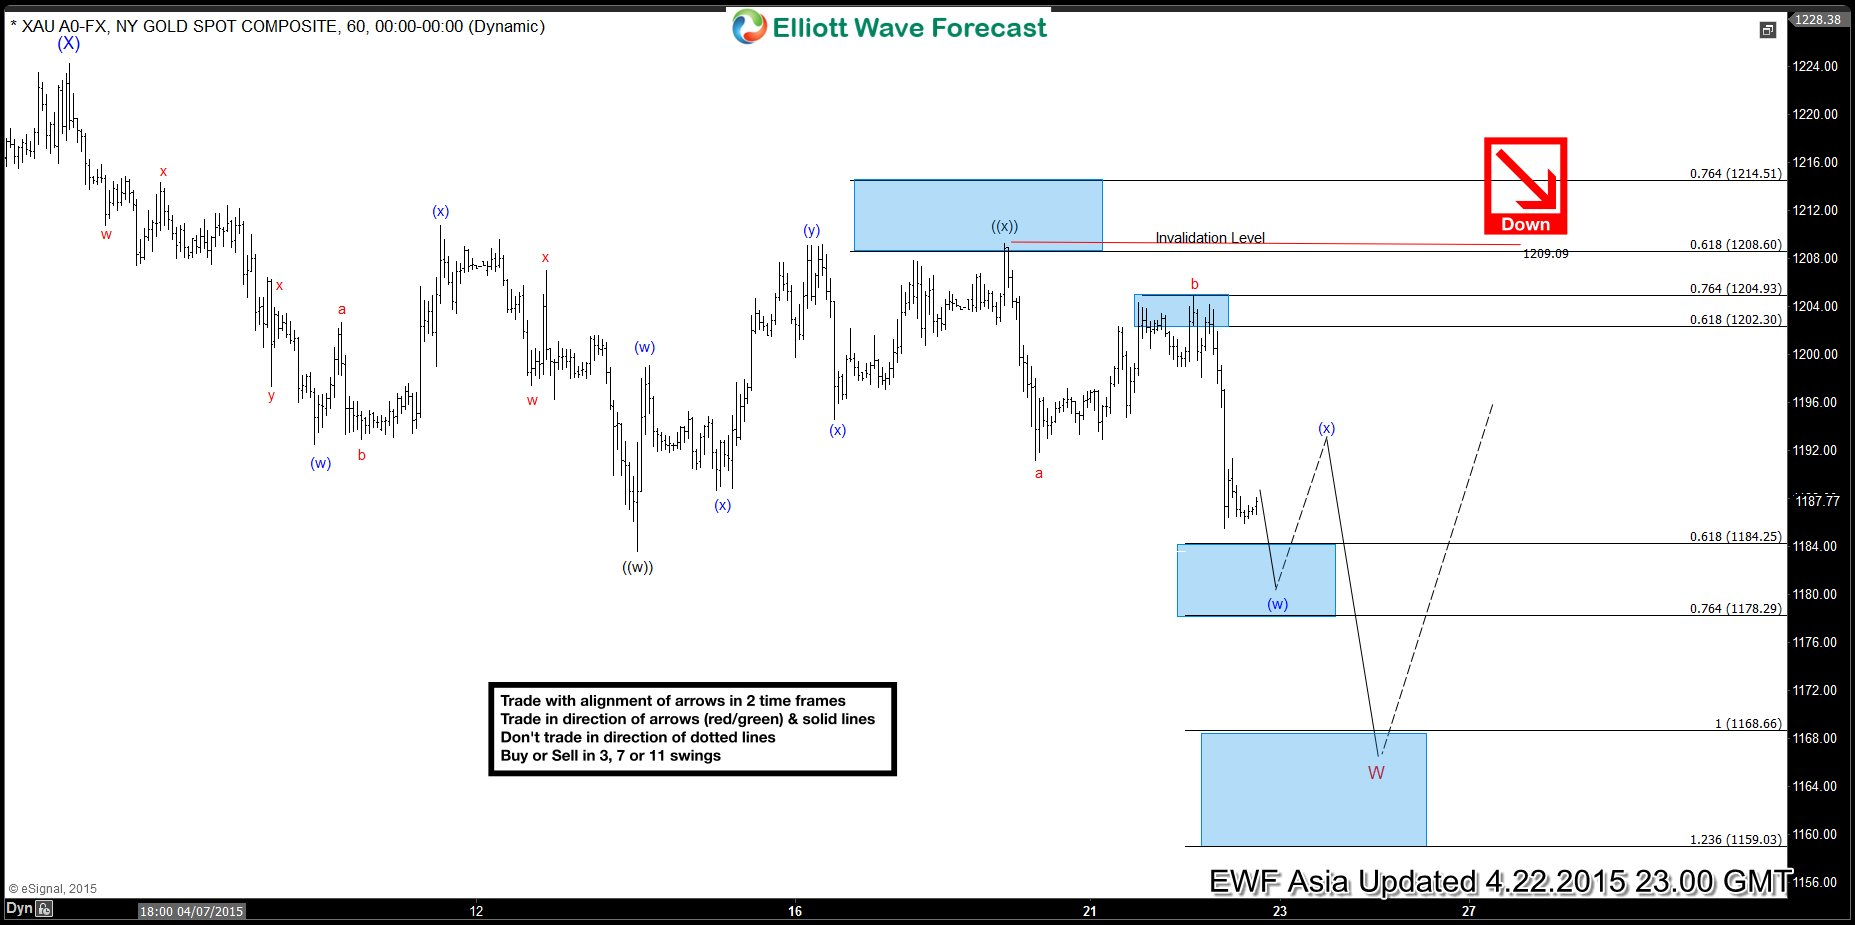 XAU (Gold) Short-term Elliott Wave Analysis 4.22.2015